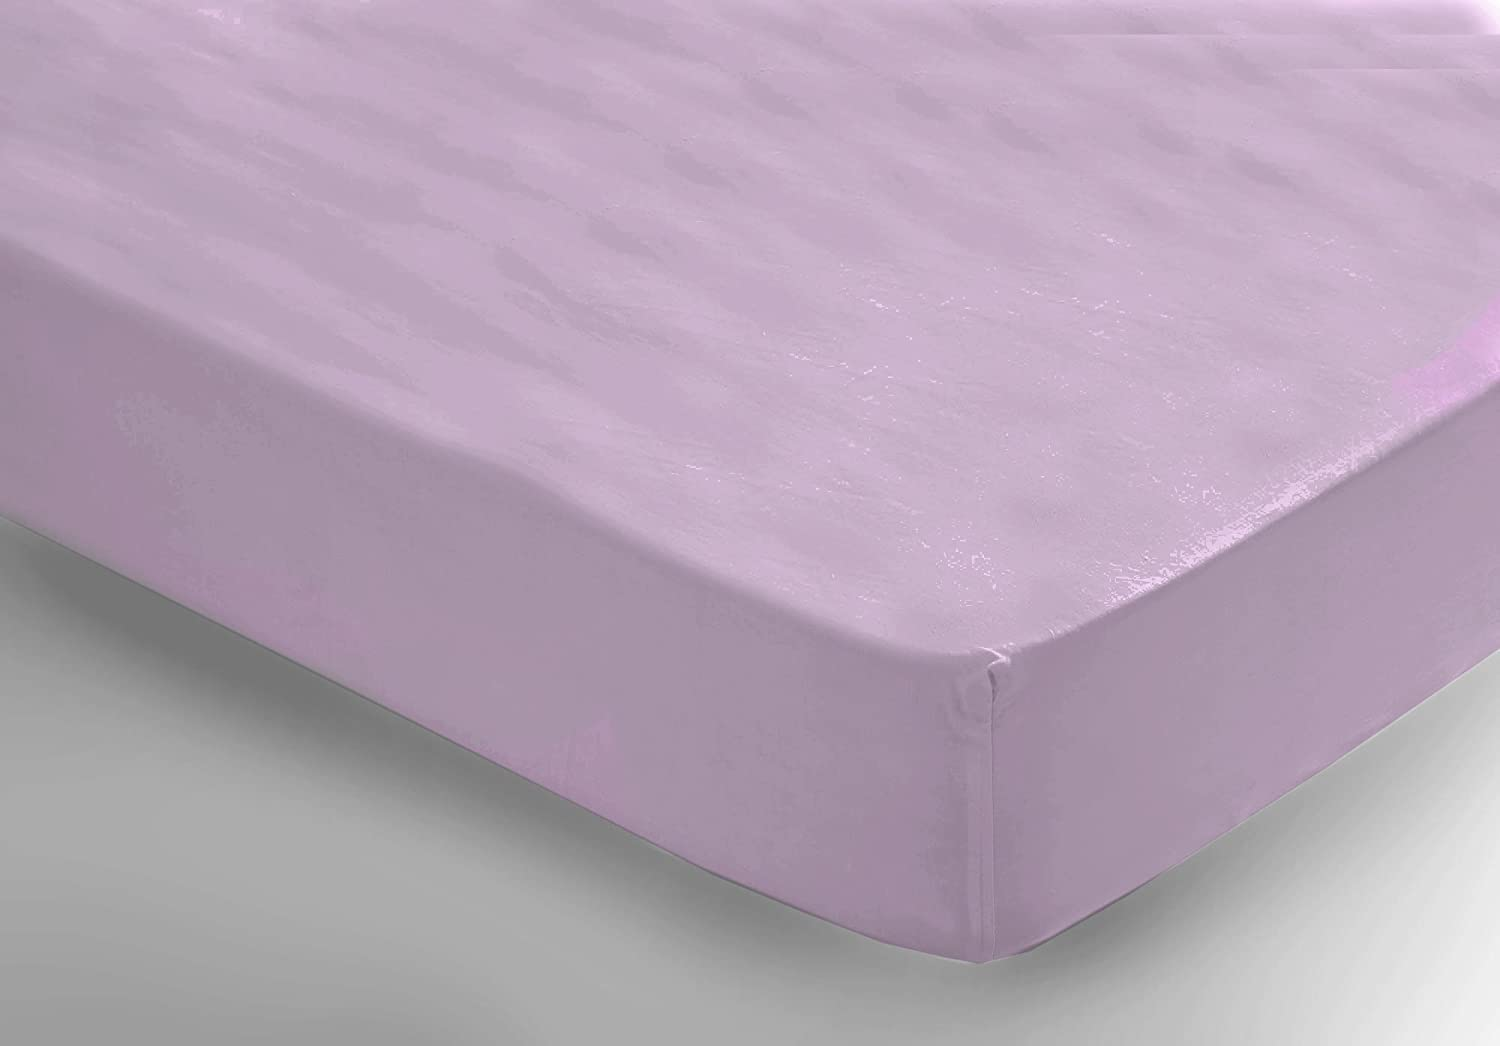 True Certified Organic Crib Fitted Sheet. Soft Luxurious and Healthy Lilac by Organictextiles.com   B00I80SSDA